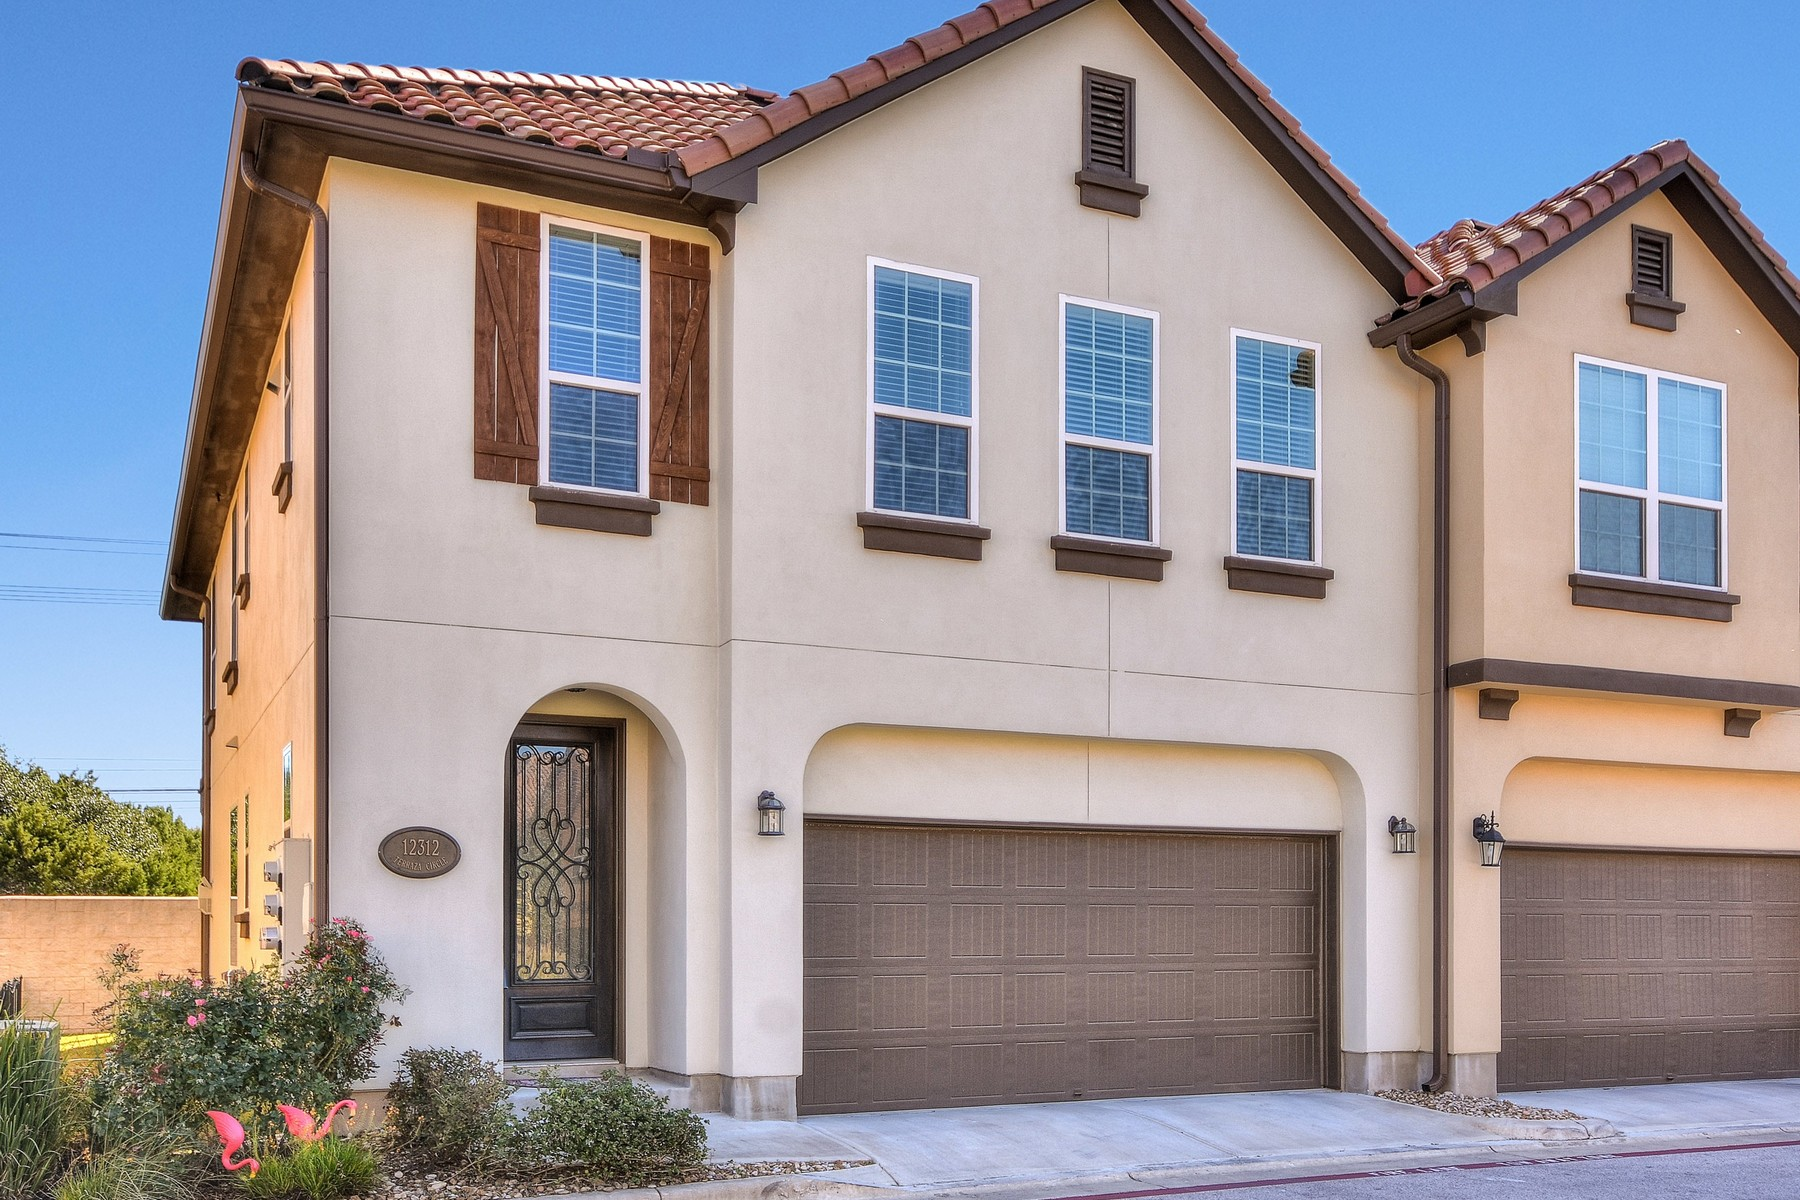 Condominium for Sale at Pristine Townhome with Thousands in Upgrades! 12312 Terraza Cir TH7 Austin, Texas 78726 United States